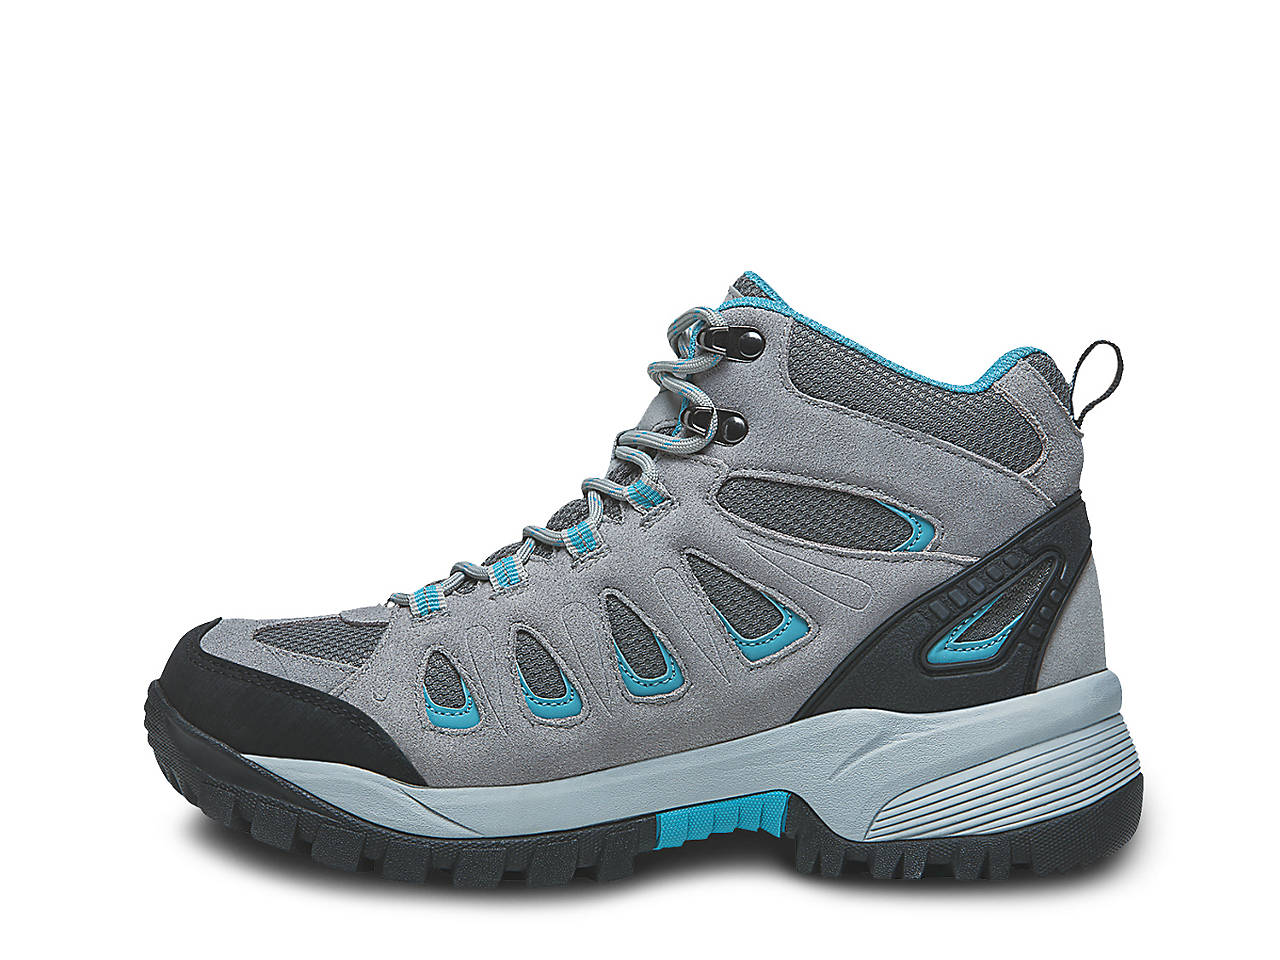 109fb6954578de Propet Ridge Walker Hiking Boot Women s Shoes